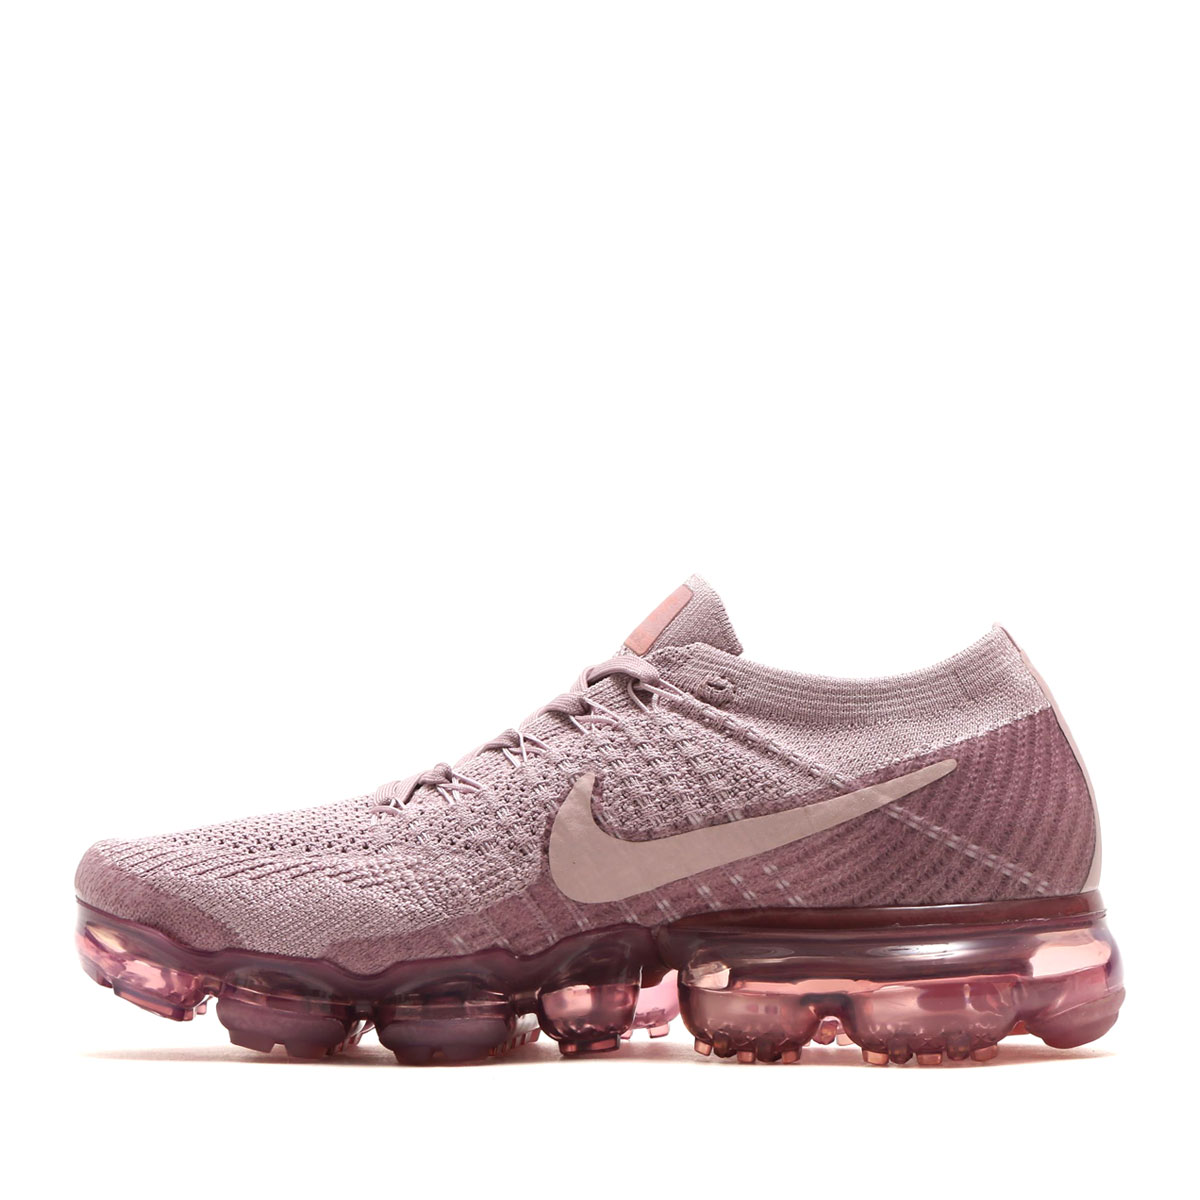 283b54604c ... NIKE WMNS AIR VAPORMAX FLYKNIT (Nike women air vapor max fried food  knit) ...